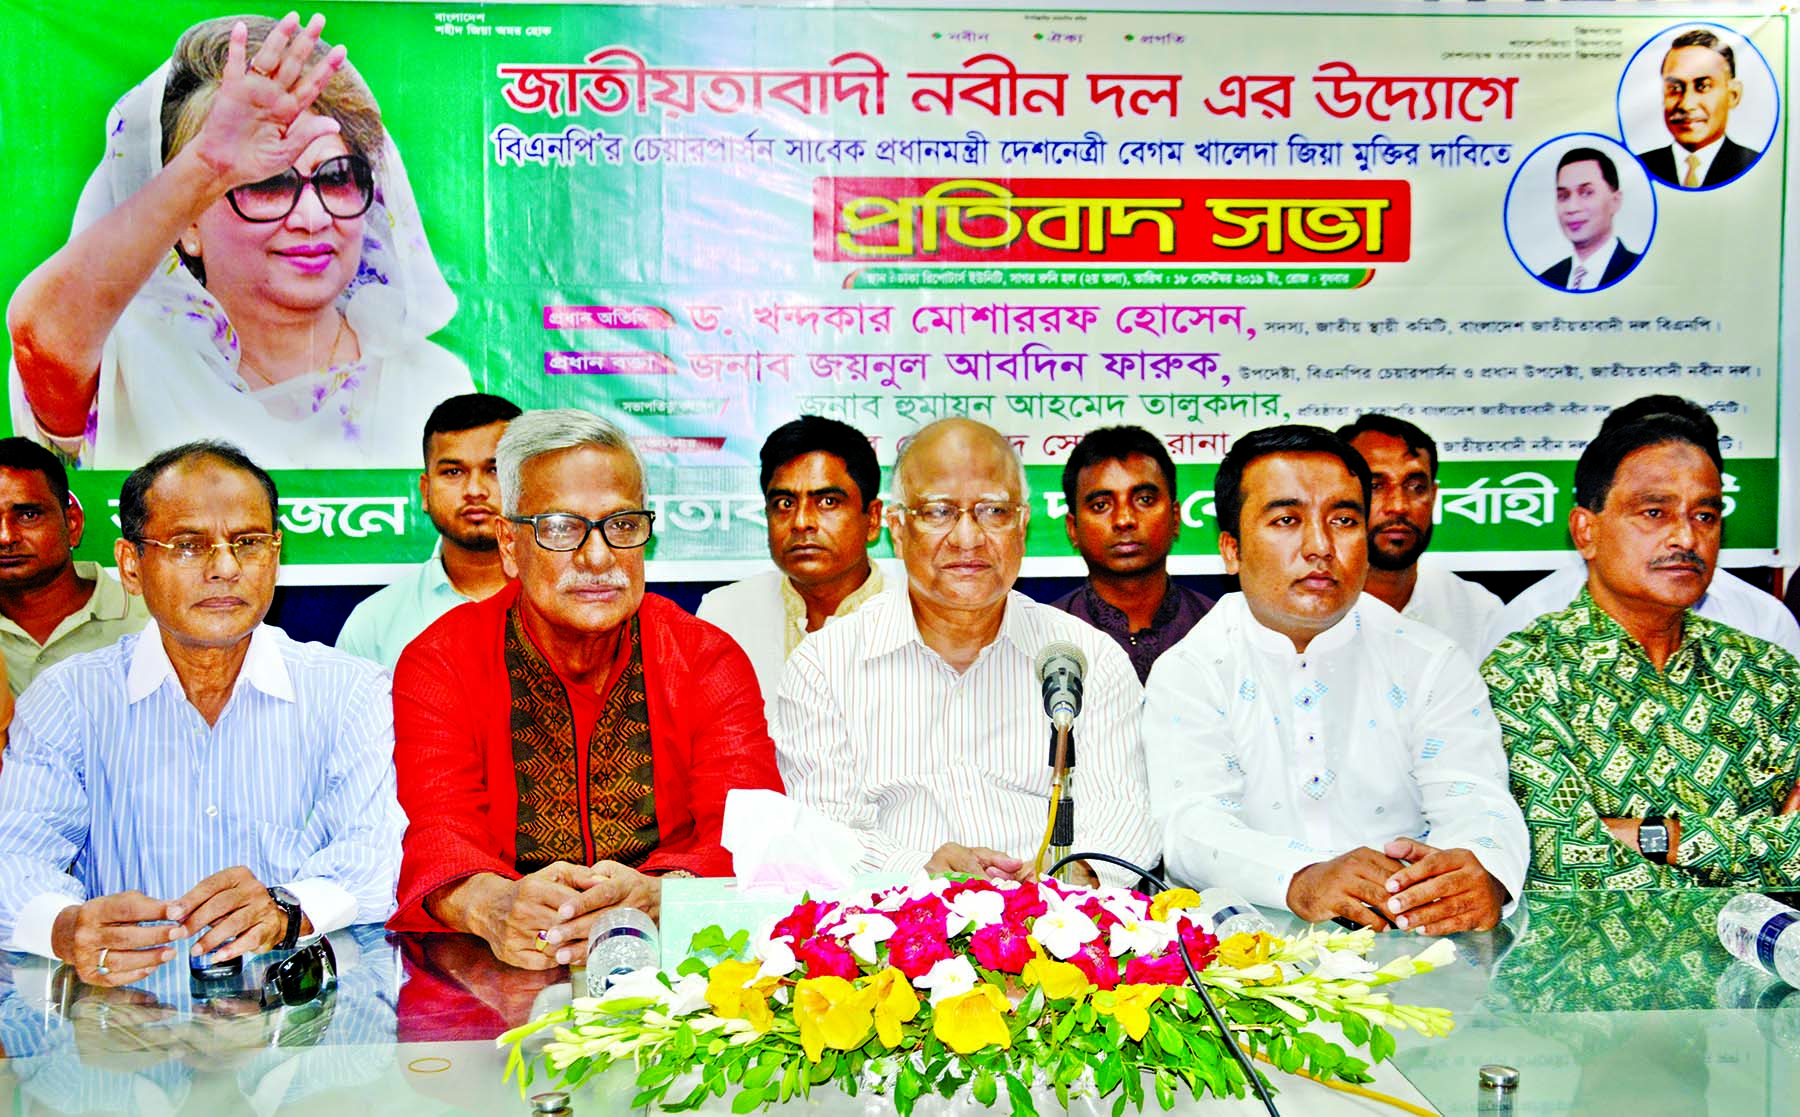 BNP Standing Committee Member Dr Khondkar Mosharraf Hossain, among others, at a protest meeting organised by Jatiyatabadi Nabin Dal in DRU auditorium on Wednesday demanding release of the party chief Begum Khaleda Zia.